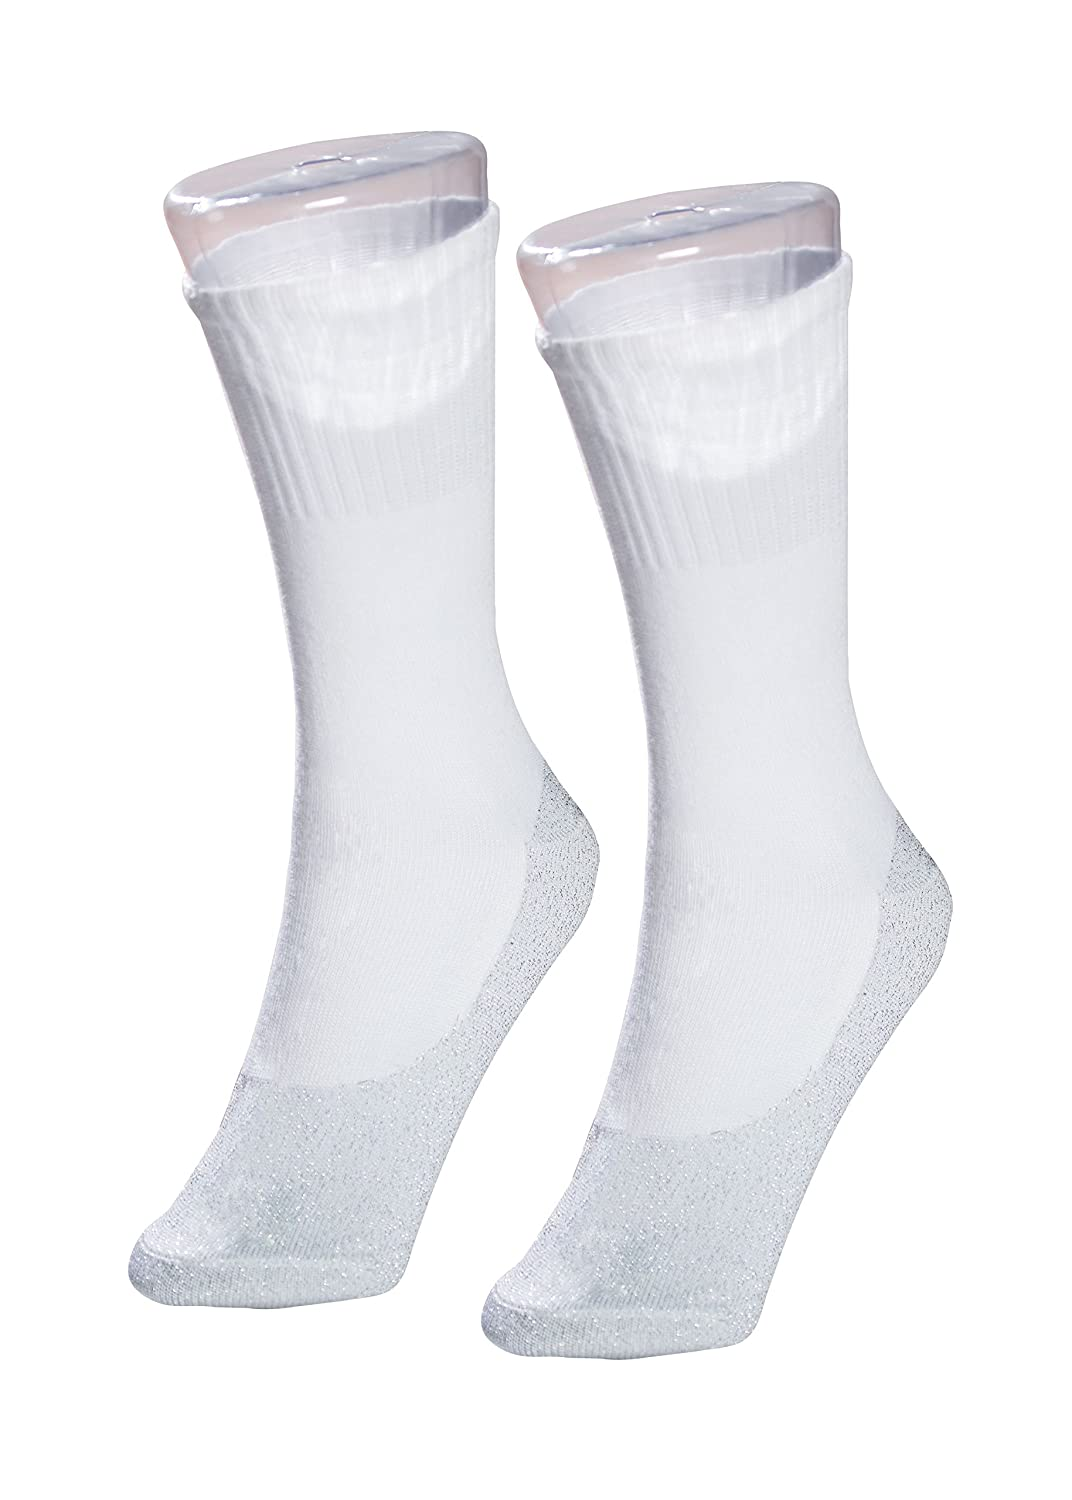 35 Below Socks - 3 pairs - Keep Your Feet Warm and Dry